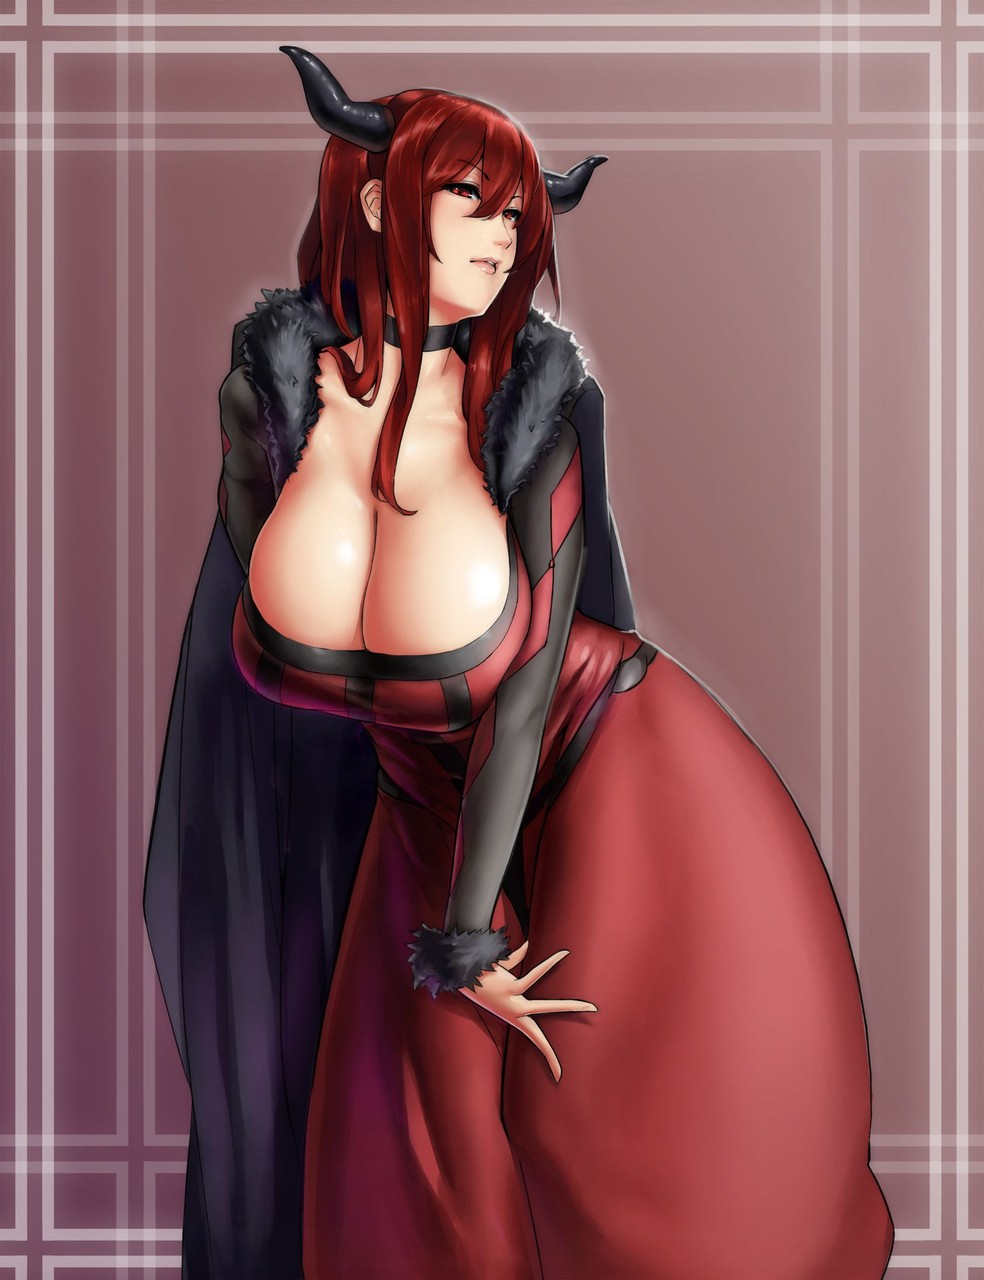 hanging_breasts leaning_forward092